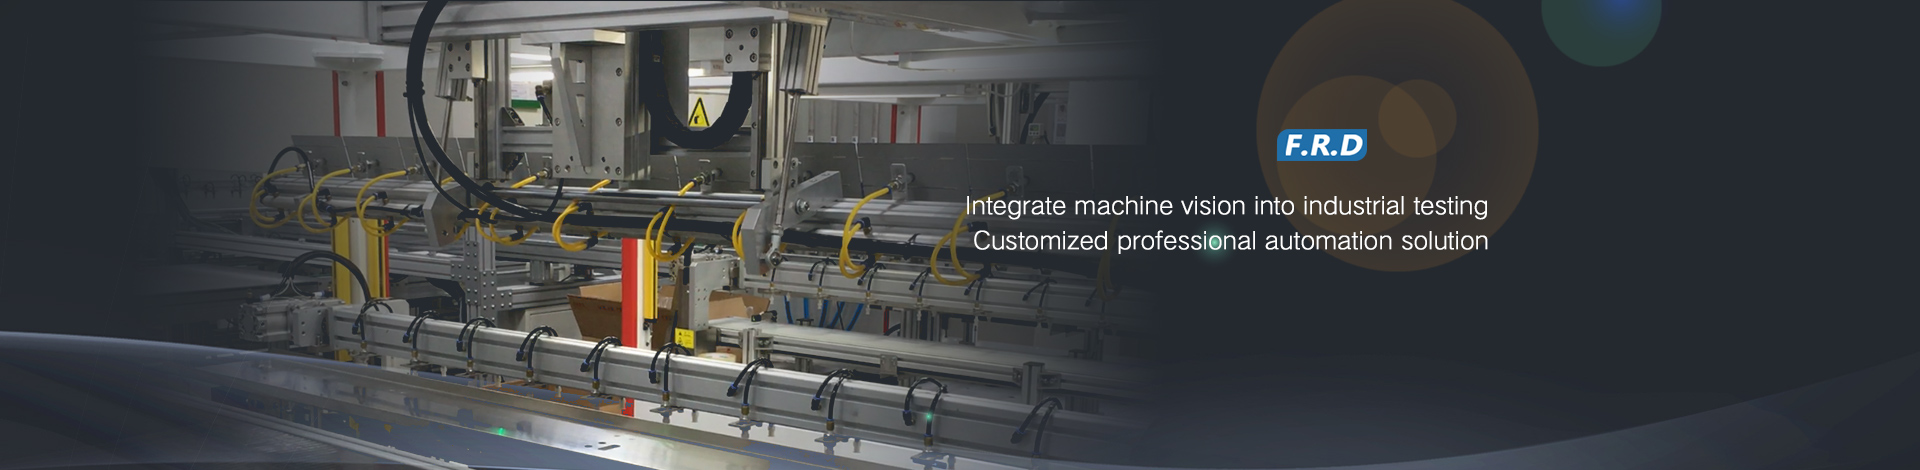 Customized professional automation solution